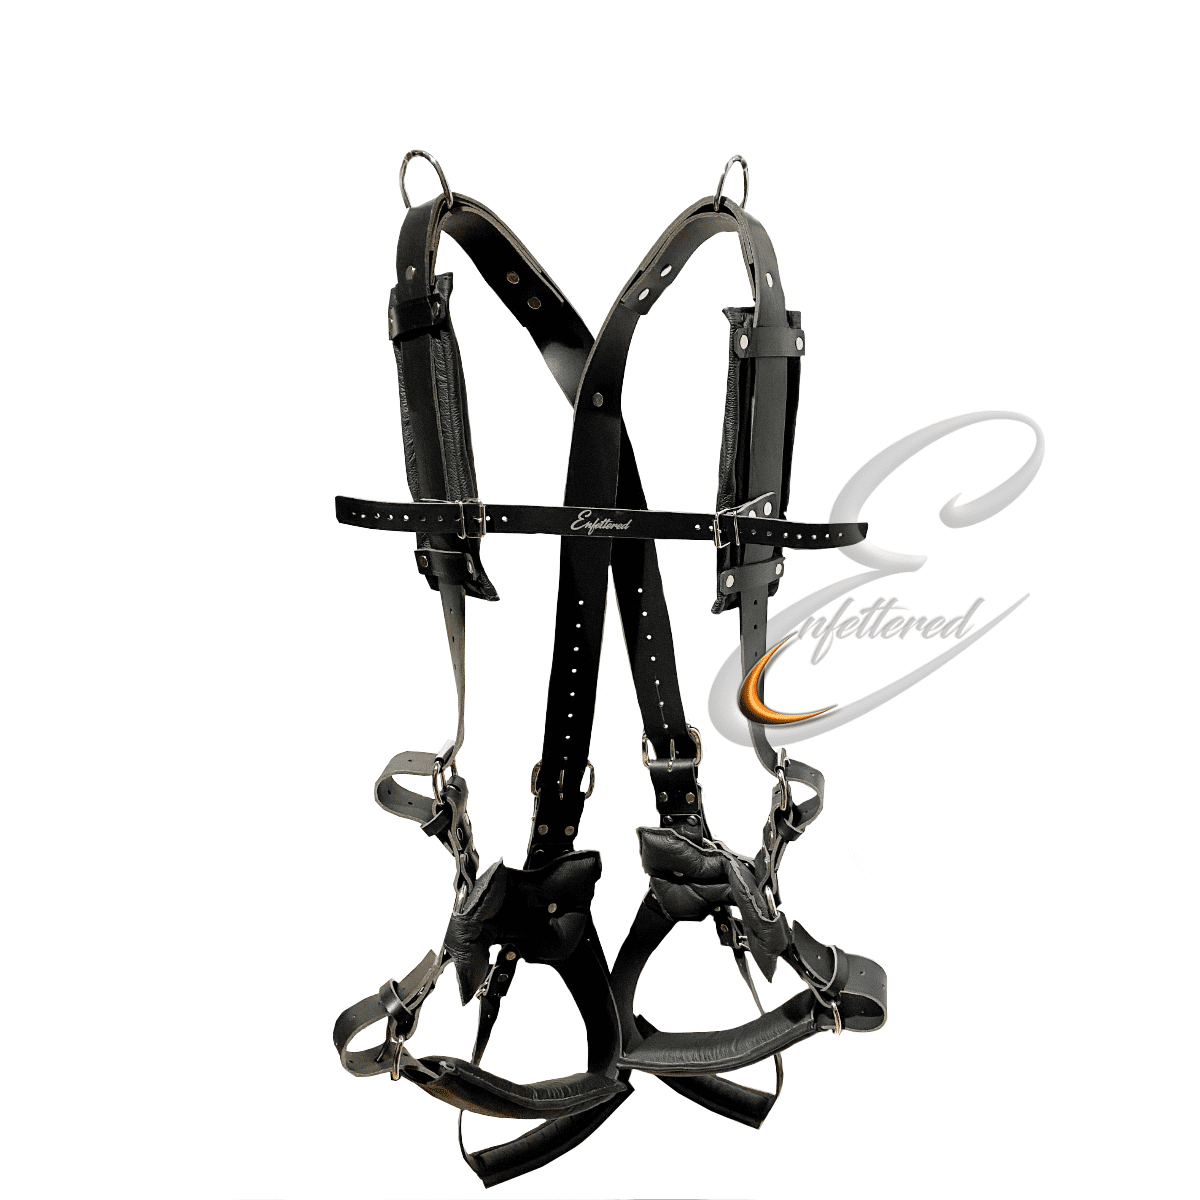 Enfettered Leather Bondage Suspension Harness with Foot Support